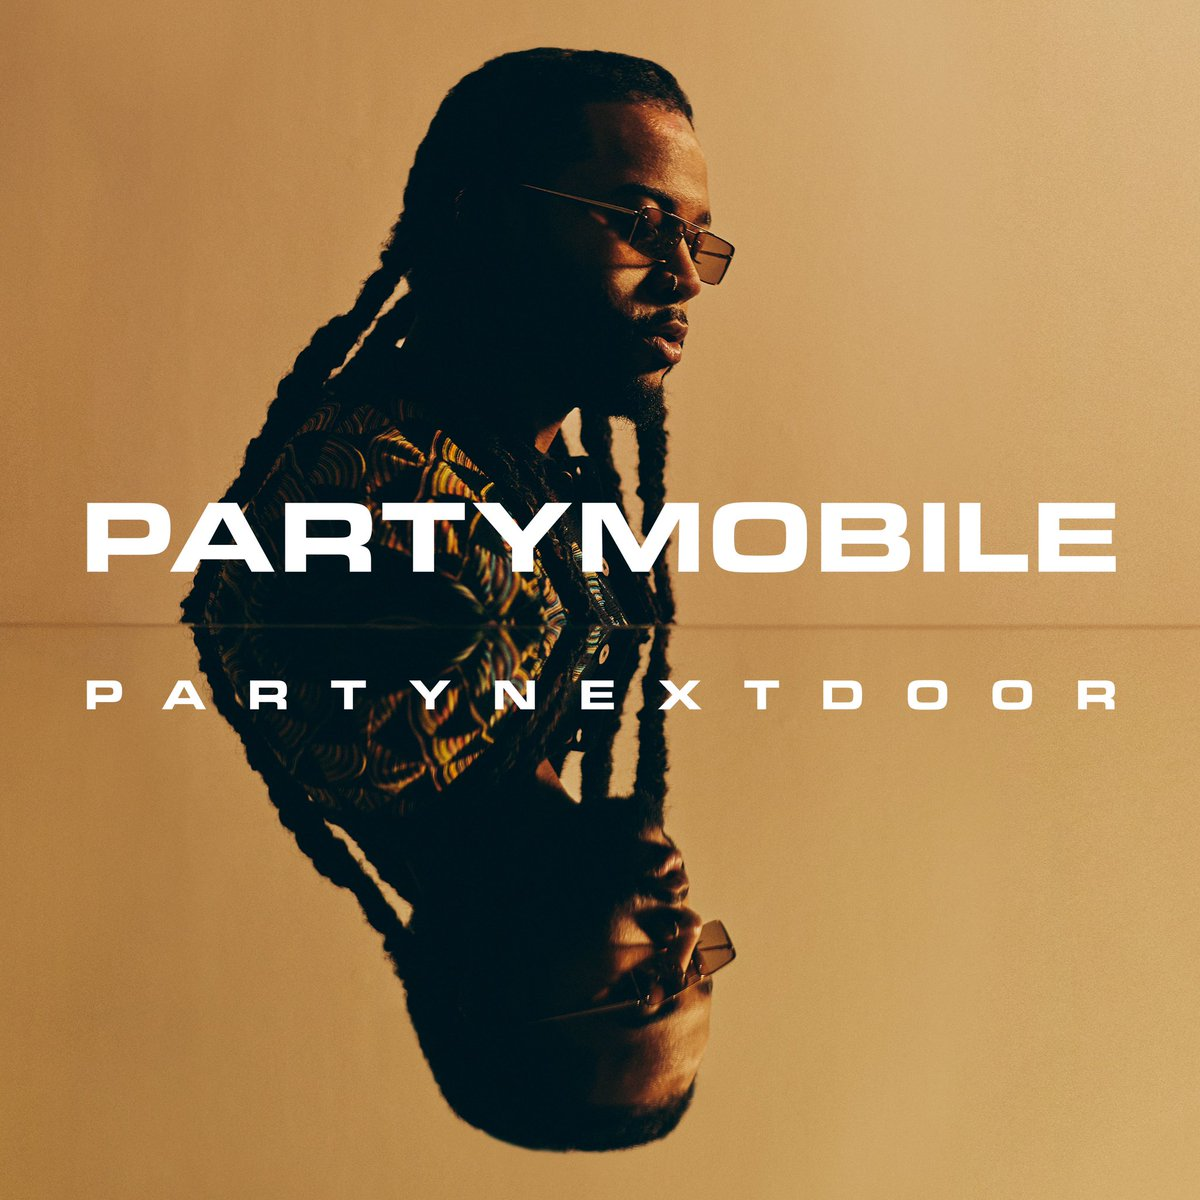 PARTYMOBILE out now https://t.co/y1X0F05nih https://t.co/YaBfoQJsMo